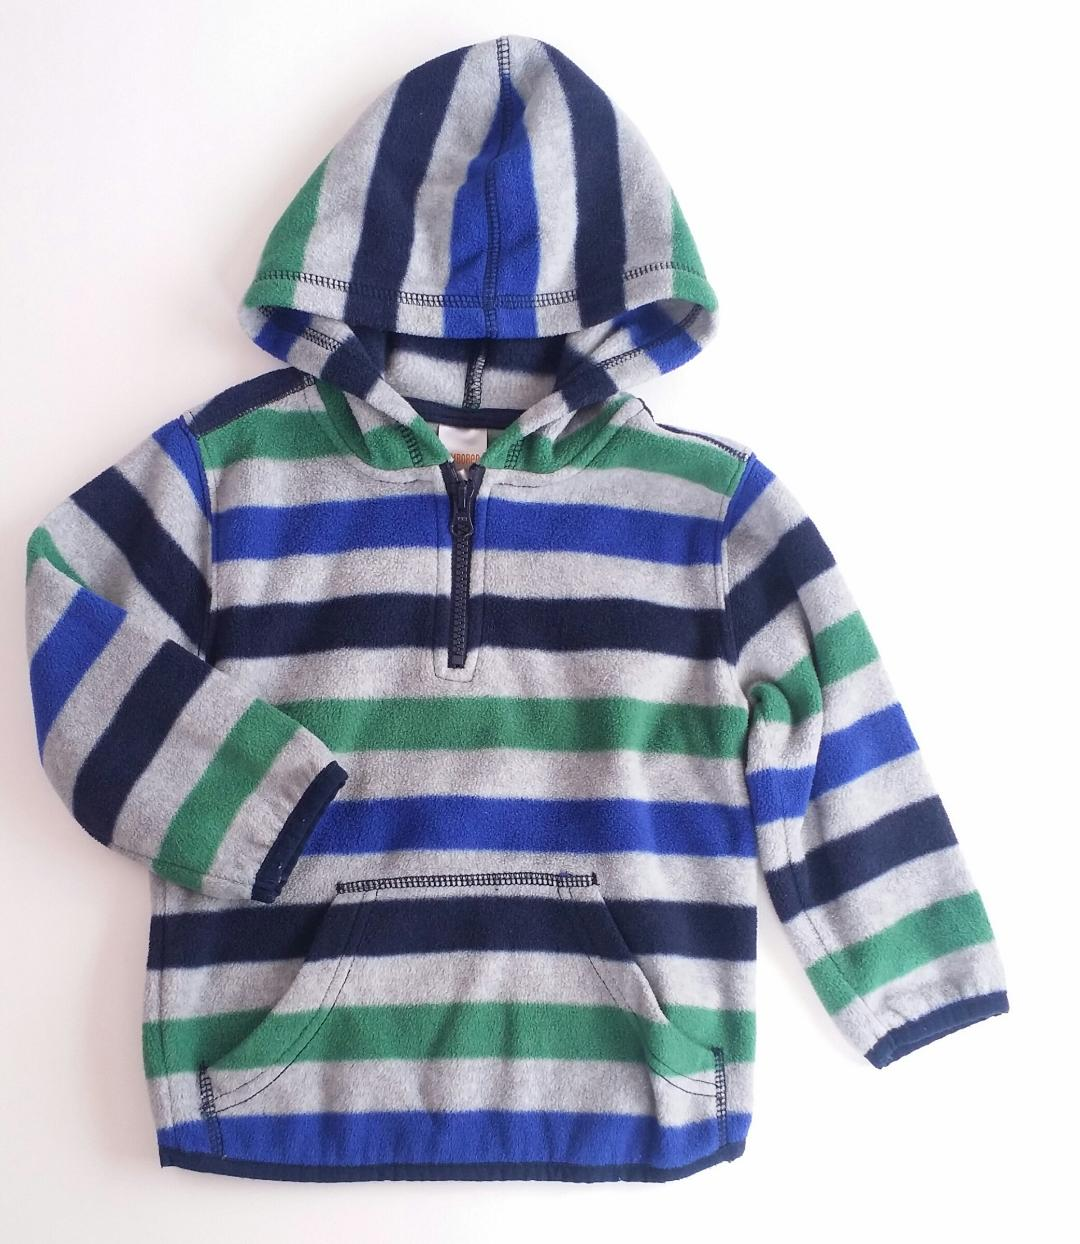 Gymboree-2-YEARS-Striped-Fleece-Outerwear_2149316A.jpg